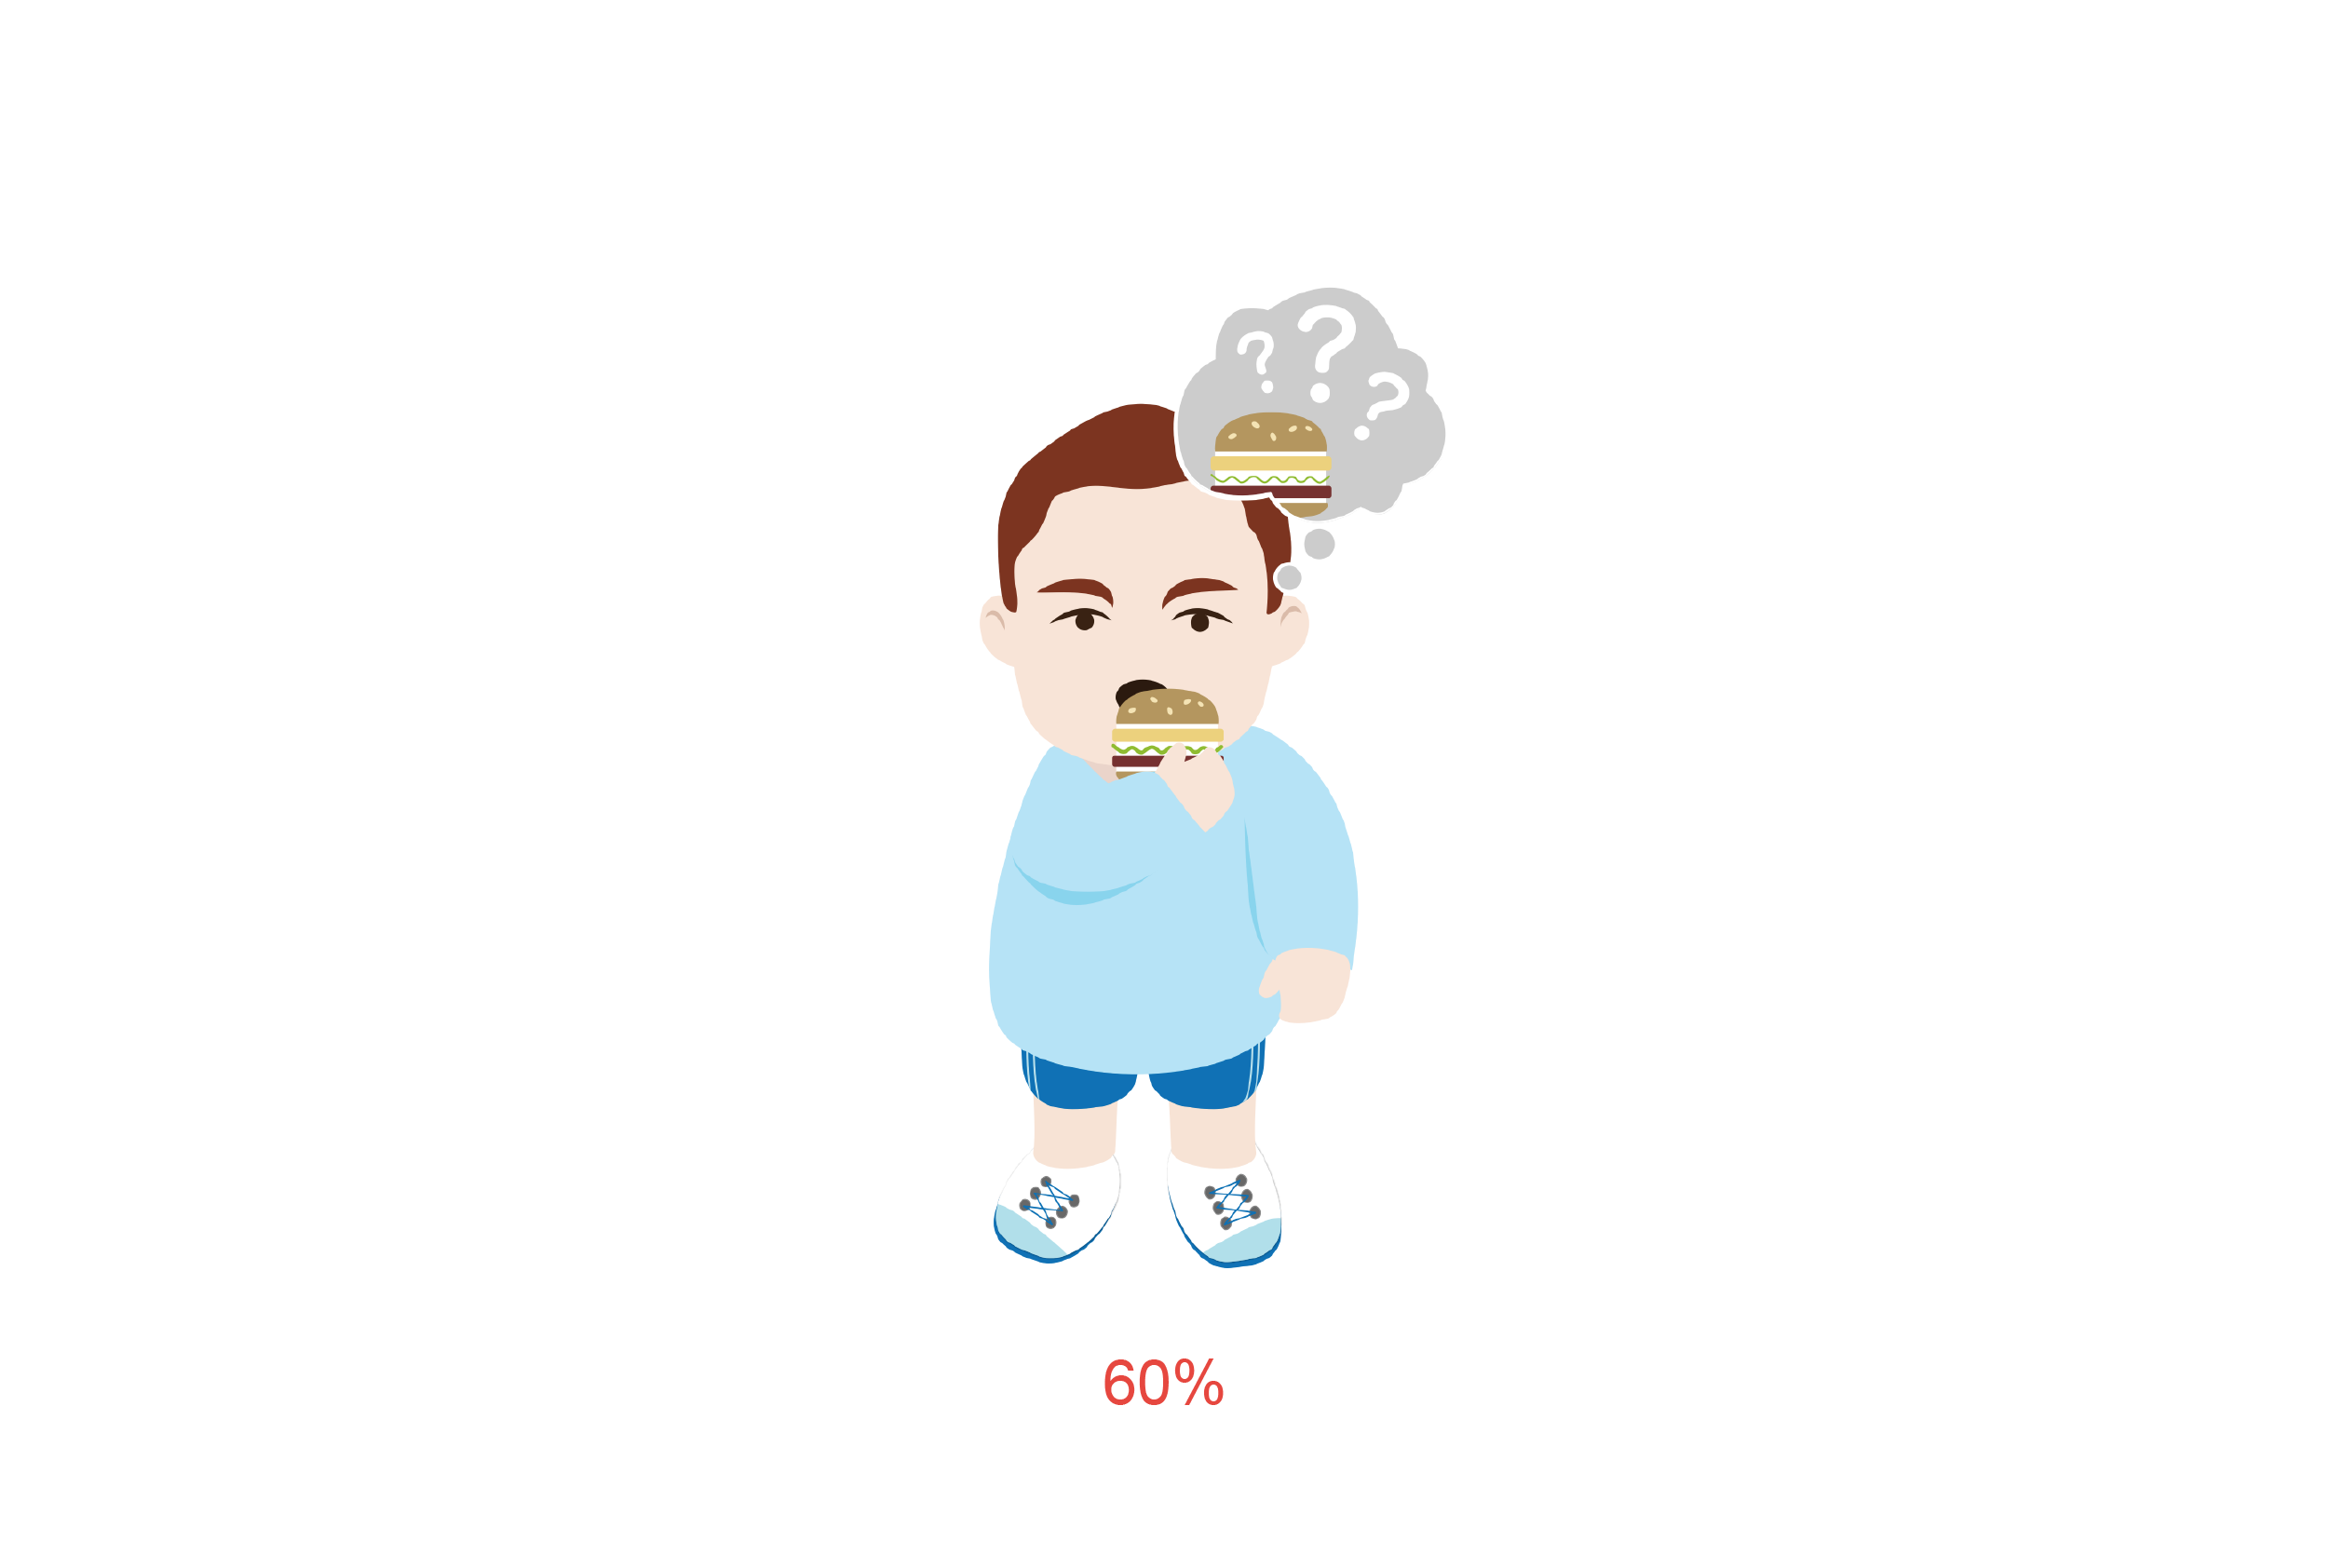 Patient with hamburger thinking of what food it could be. Illustration